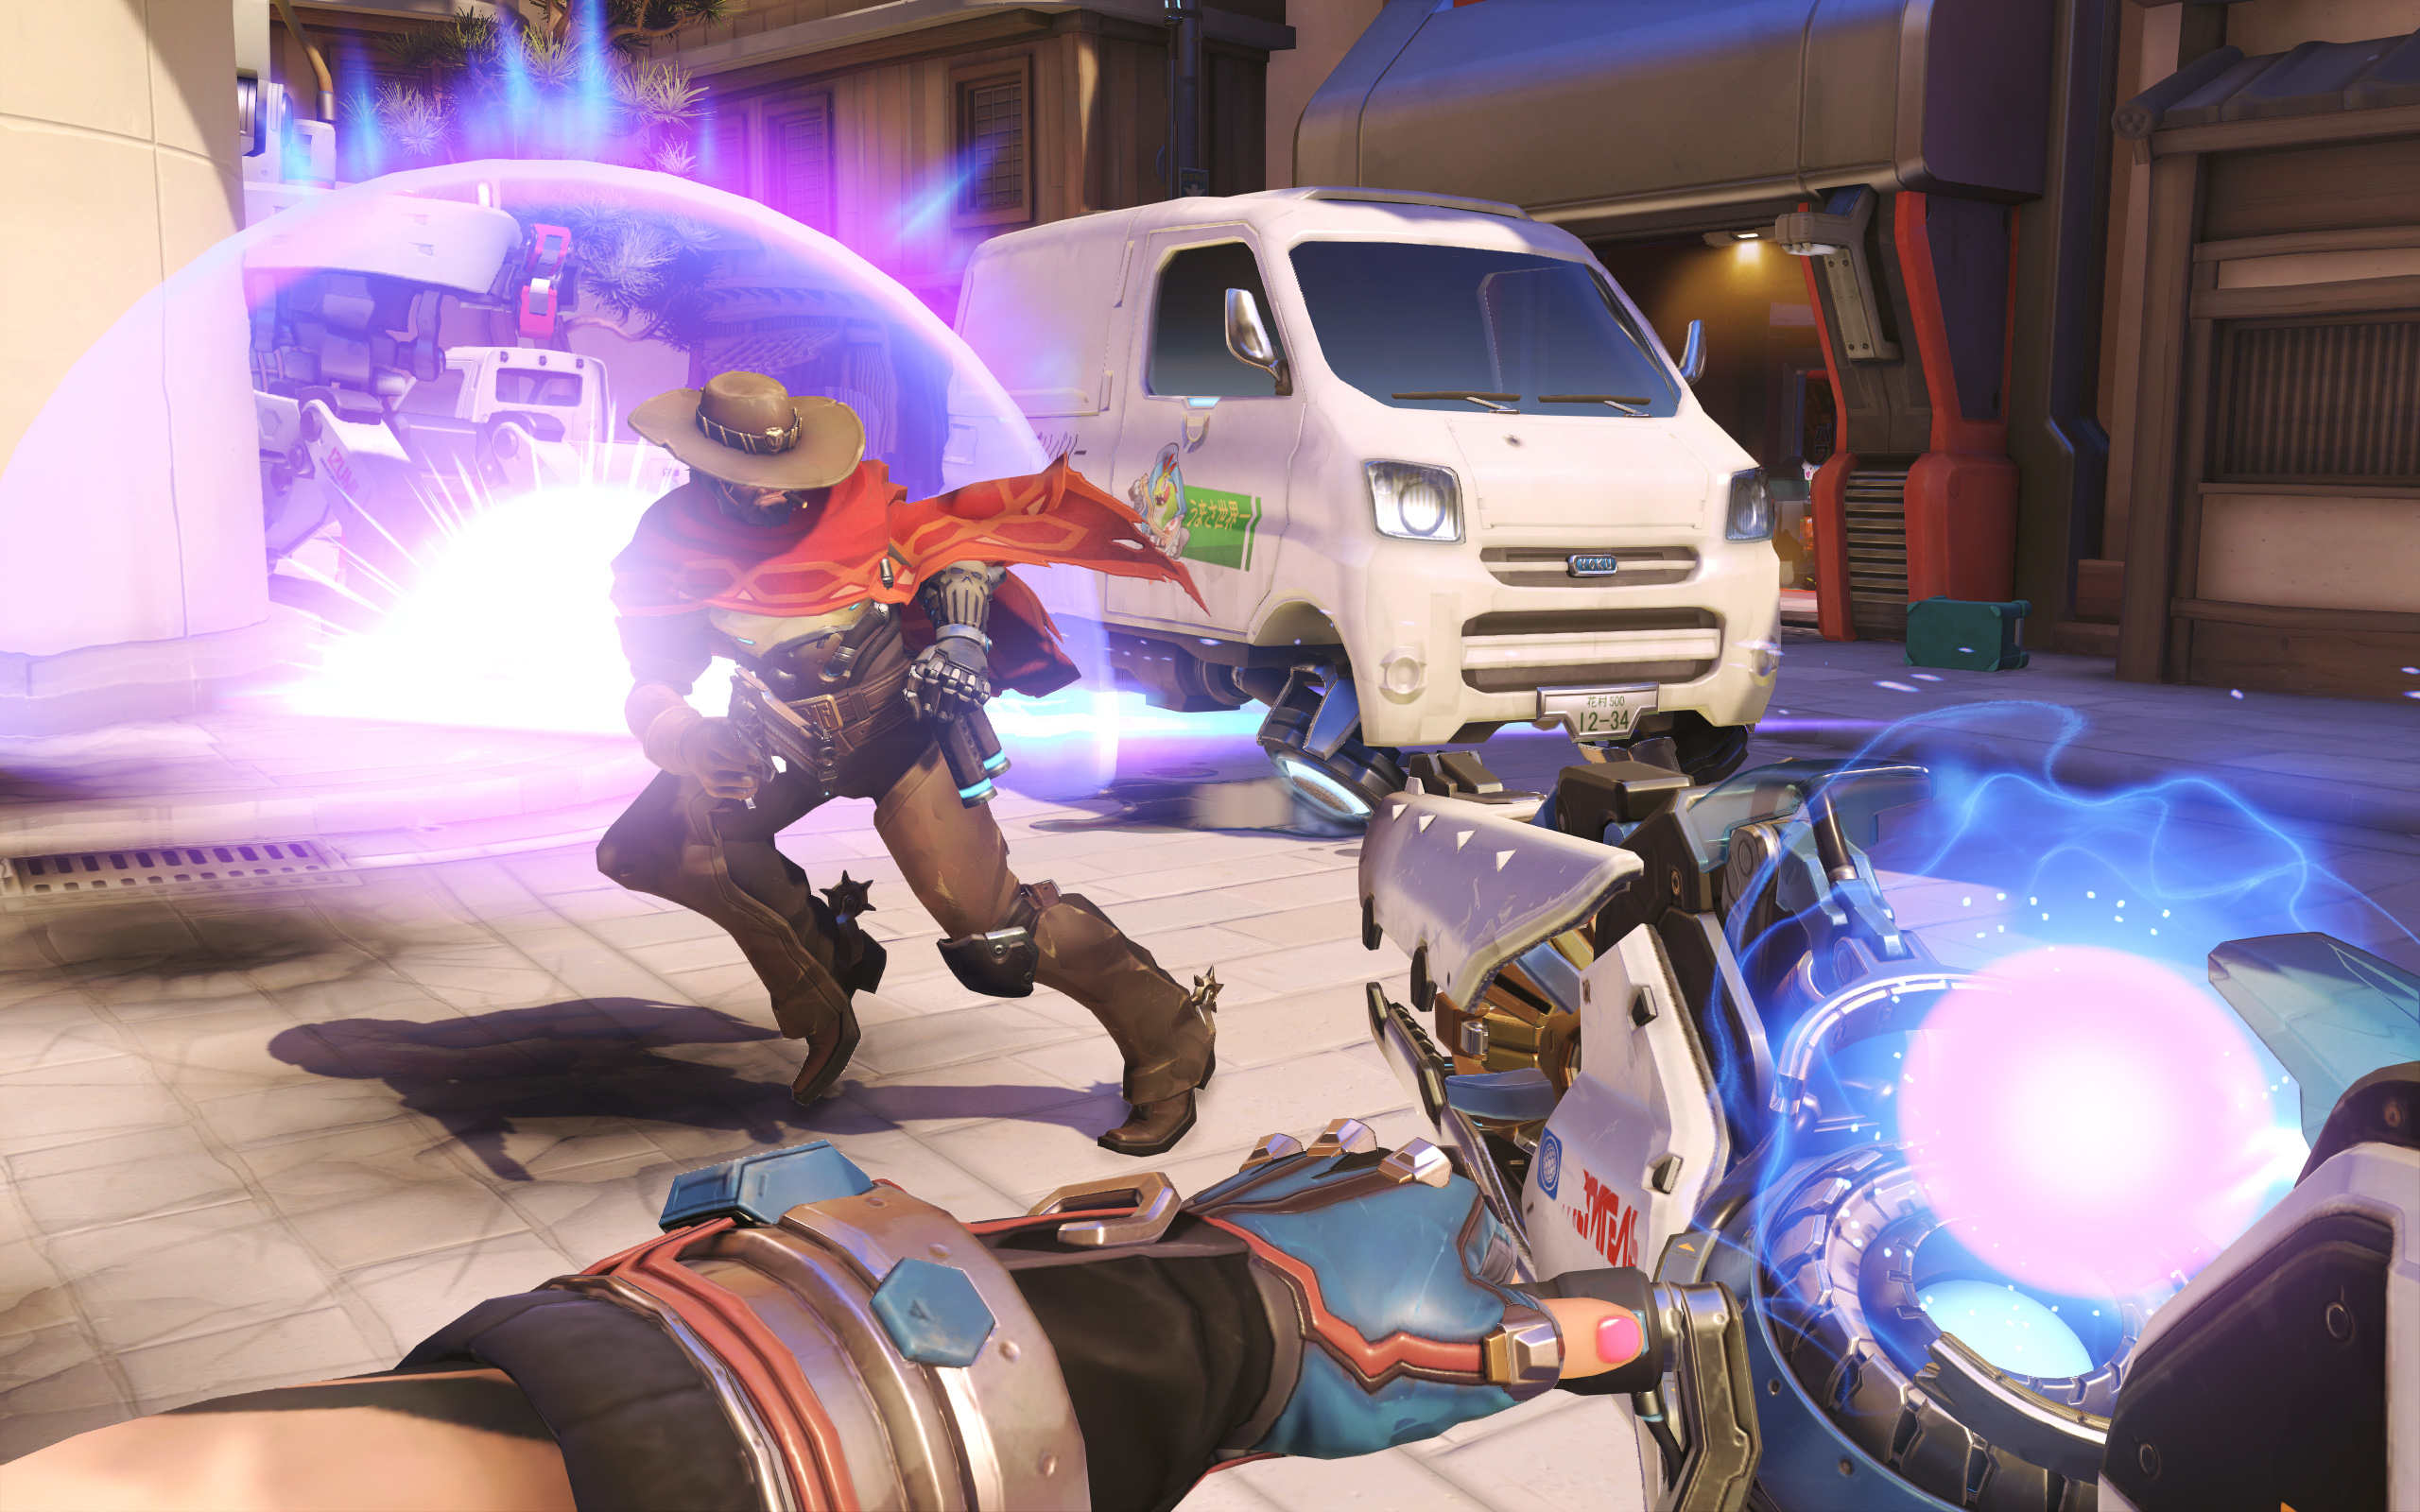 Battle net hit with DDoS attack, all games briefly affected